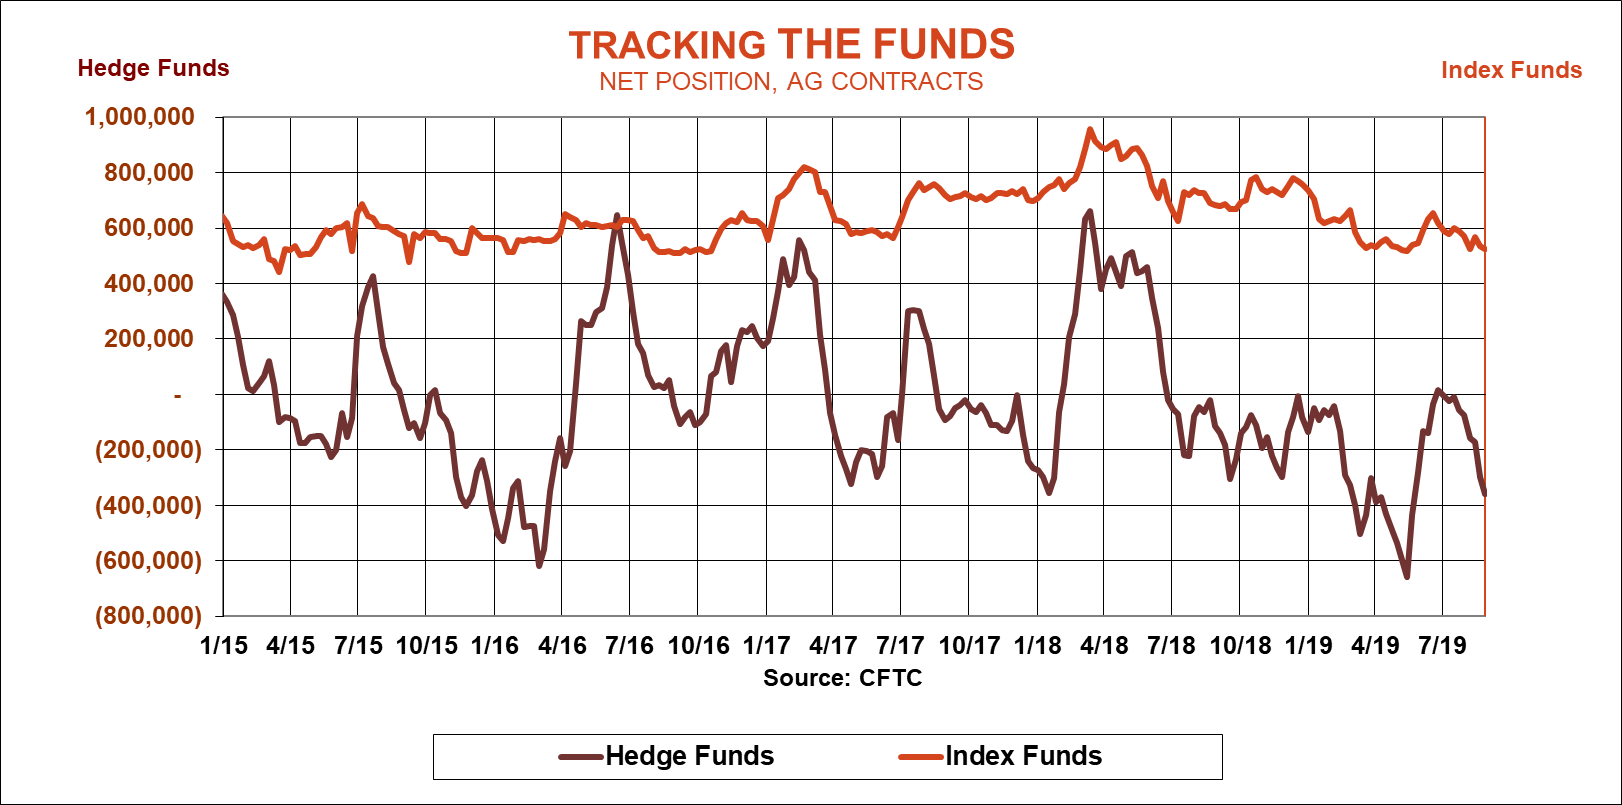 tracking-funds-cftc-083019.png